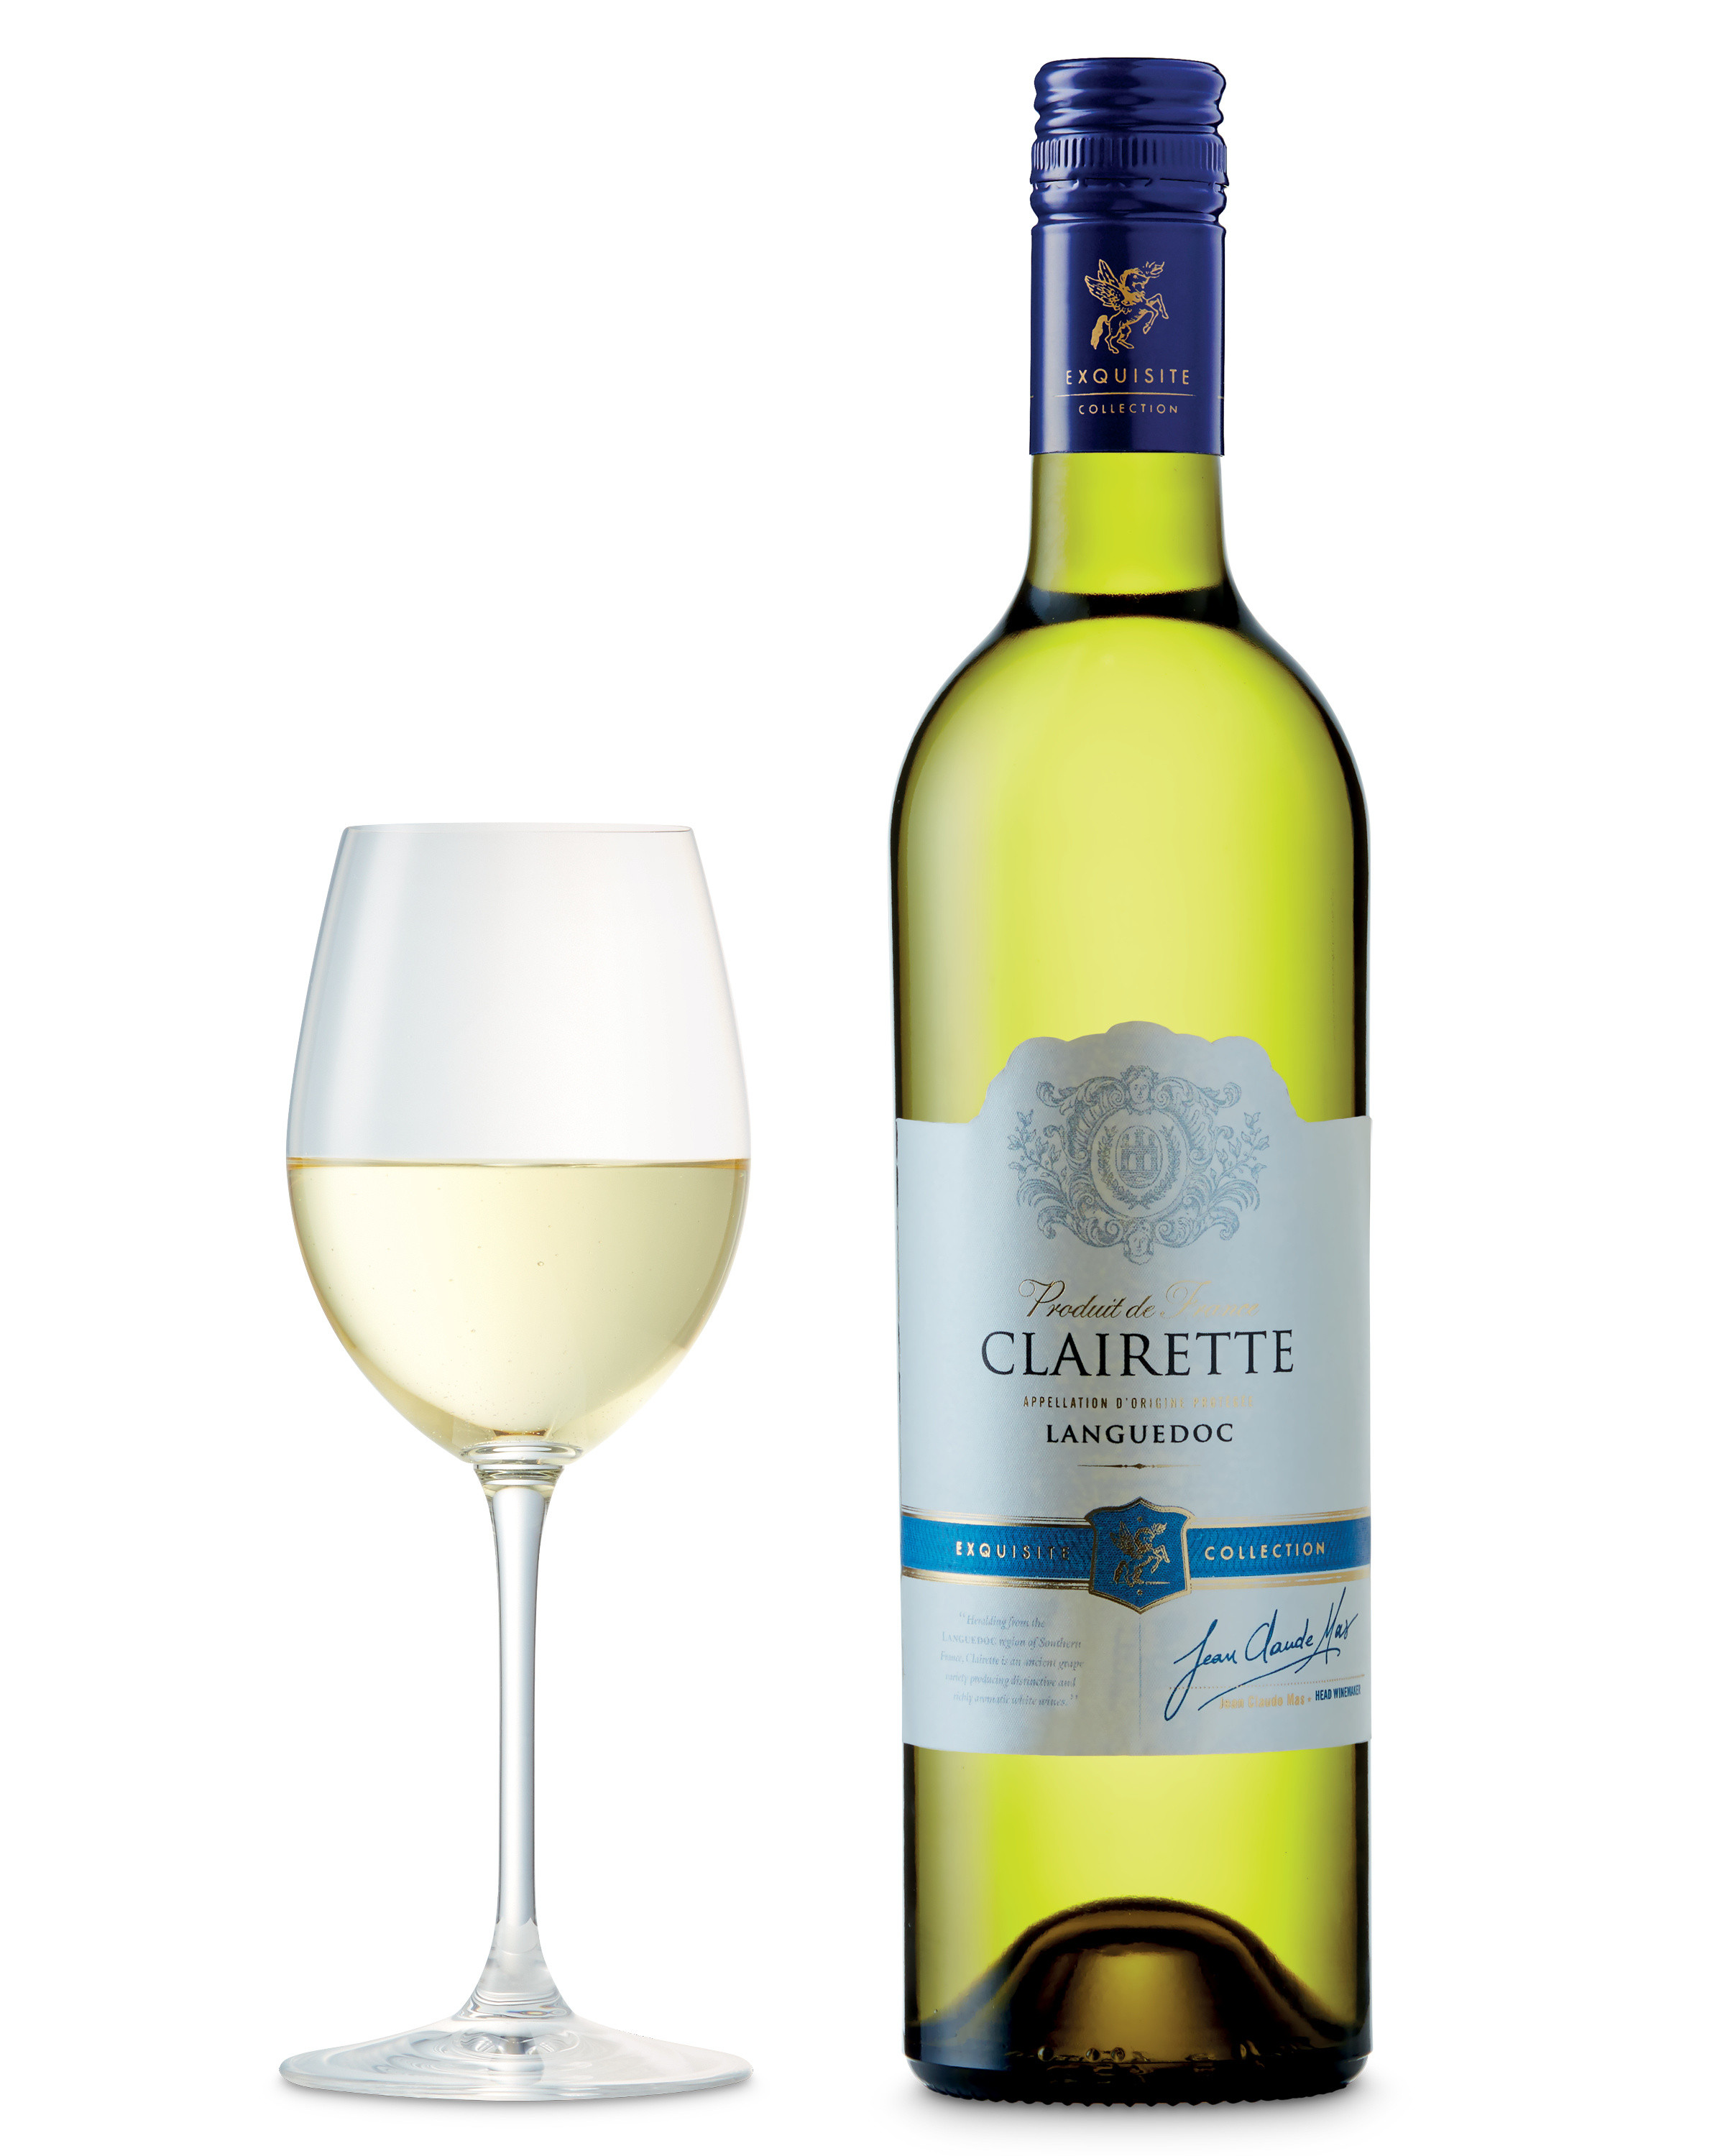 Aldi The Exquisite Collection Clairette de Languedoc